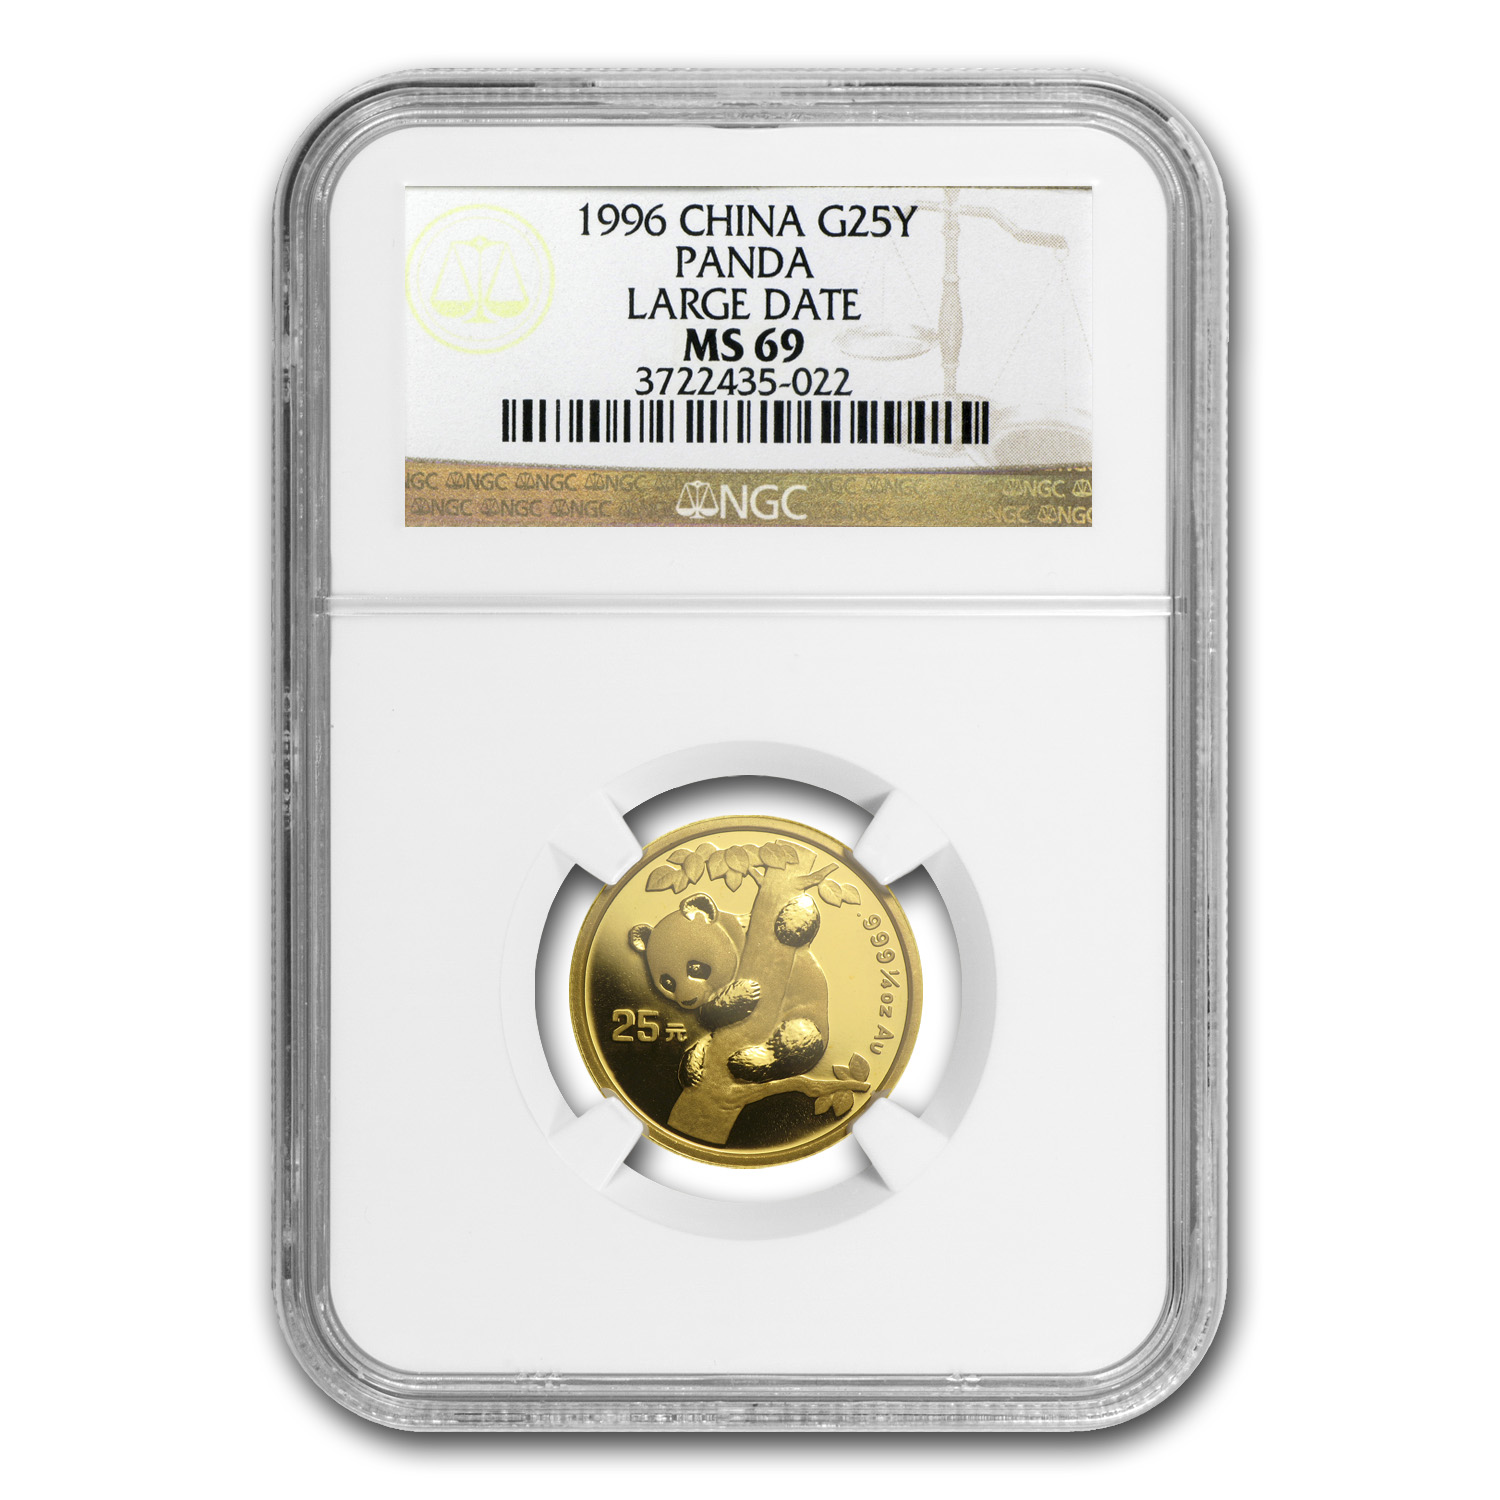 1996 China 1/4 oz Gold Panda Large Date MS-69 NGC